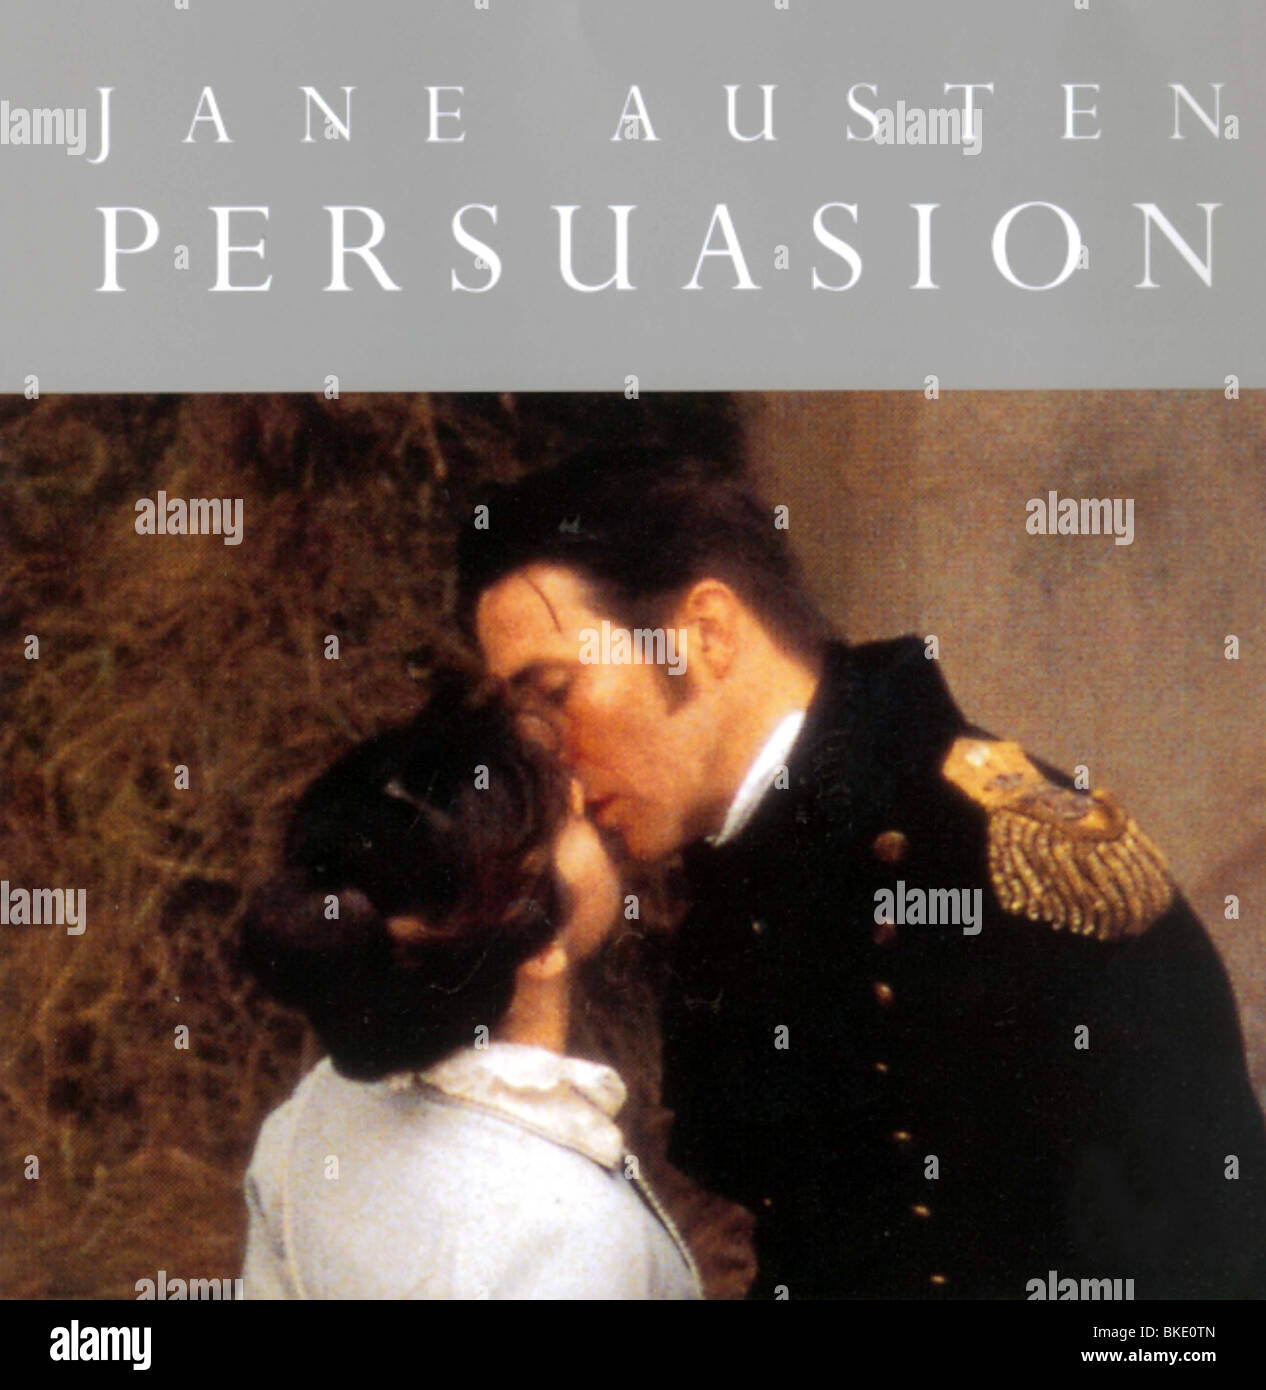 PERSUASION -1995 POSTER - Stock Image